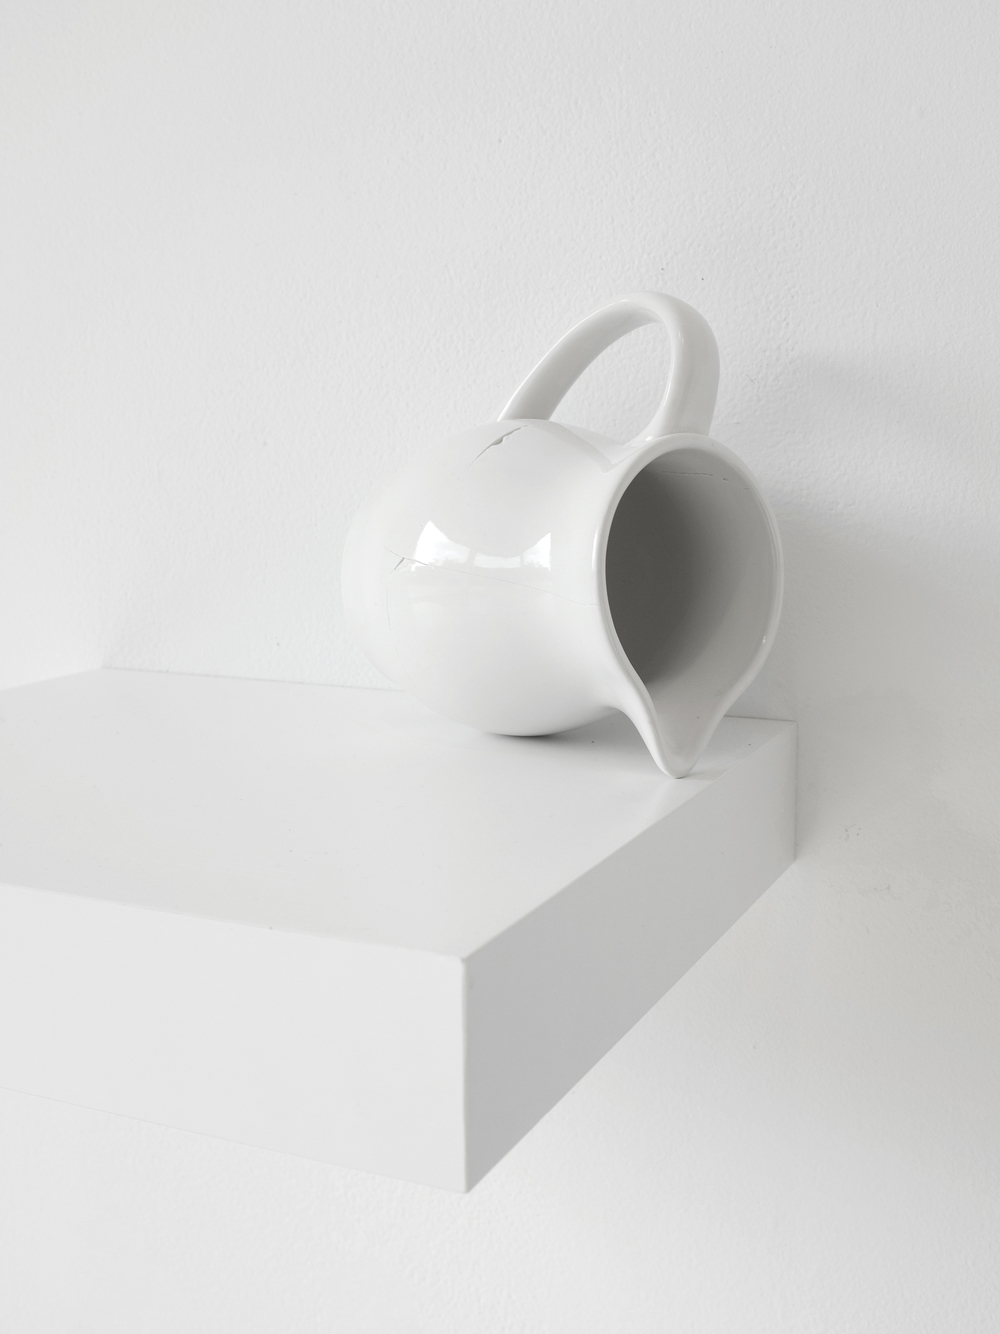 "Installation of milk pitcher (found), broken and fixed, 5""x4"", 2015 (detail)"